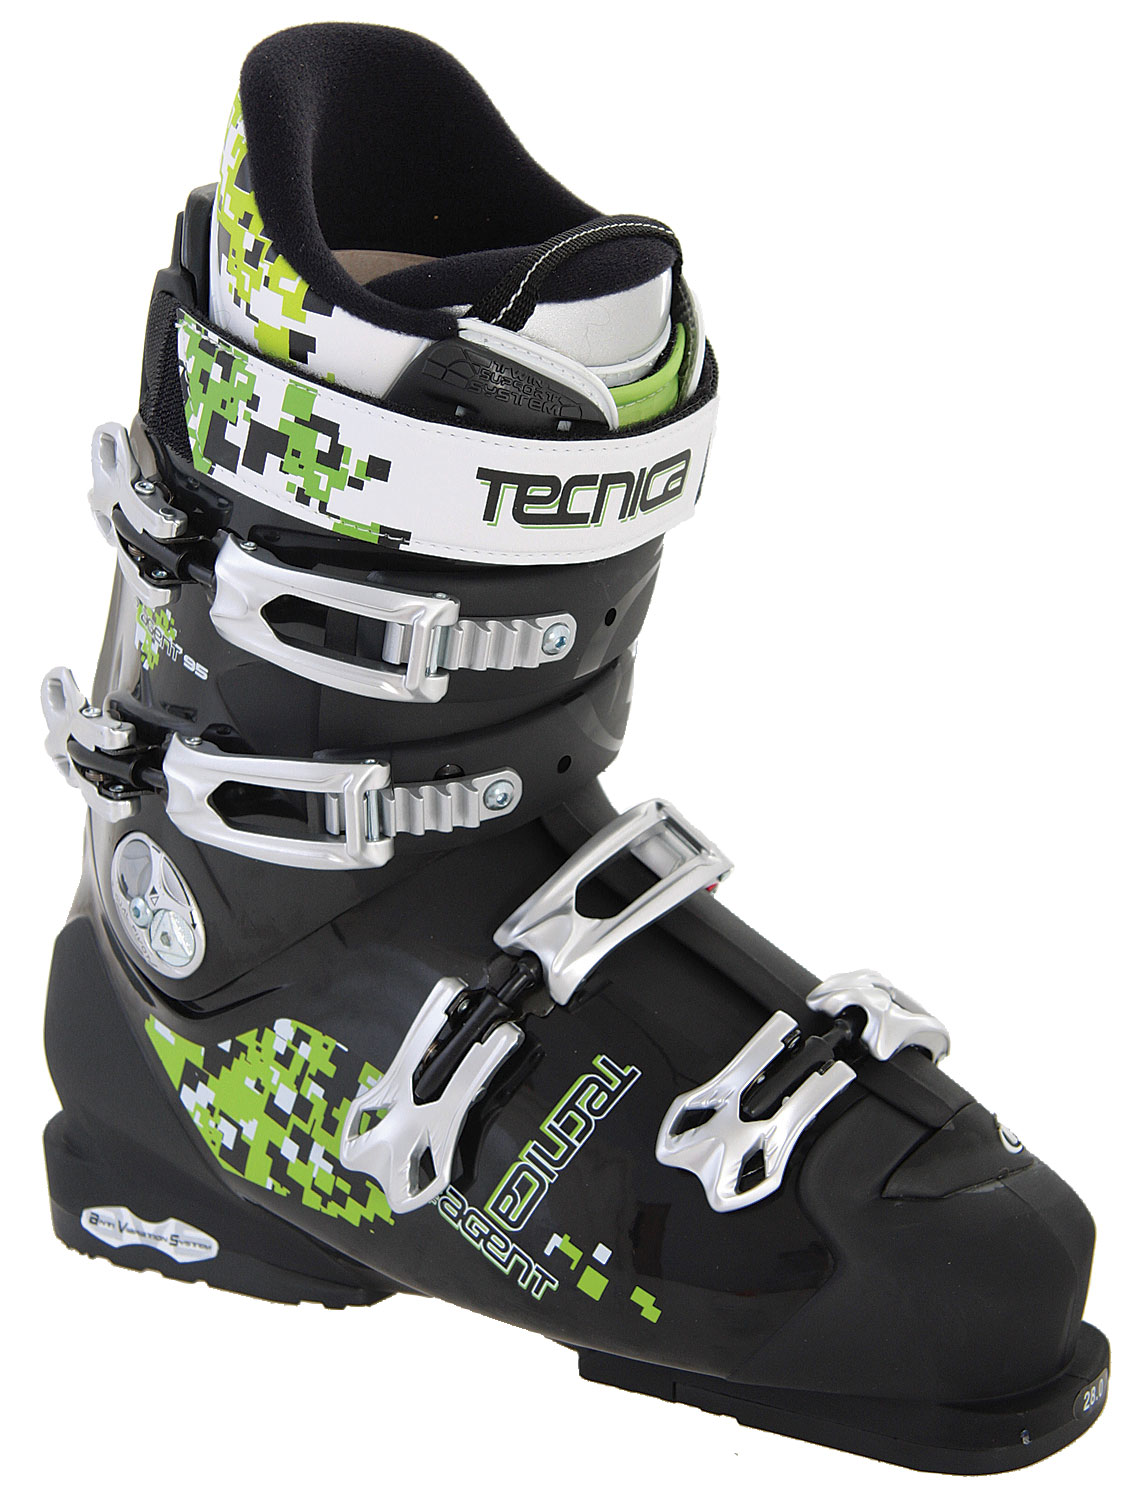 Ski Every skier needs a trusty pair of boots that fits their style. The Tecnica Agent 95 Ski Boots might just be what you're looking for and there is sure a style that fits you perfectly. The fur fleece lining inside keeps your feet toasty and warm and the twin support system makes sure to keep your feet in place and avoid sprains. Tecnica Agent 95 Ski Boots also are fully adjustable, coming with triple position cuff catches and a flex adjustment.Key Features of The Tecnica Agent 95 Ski Boots: 3 Density Technology Twin Support System Dual Pivot Flex Adjustment - 2 Pos. Hinged Instep Catch Tongue Handle Pull Strap Triple Position Cuff Catches AVS With Grip Sole Diablo Alu Buckle Shock Absorbing Zeppa Shock Absorbing Tongue Rear Spoiler - Removable Fur Fleece Lining Neoprene Toe Box F.I.T. System Tongue Tongue Handle Pull Strap UltraFit Liner - $345.95